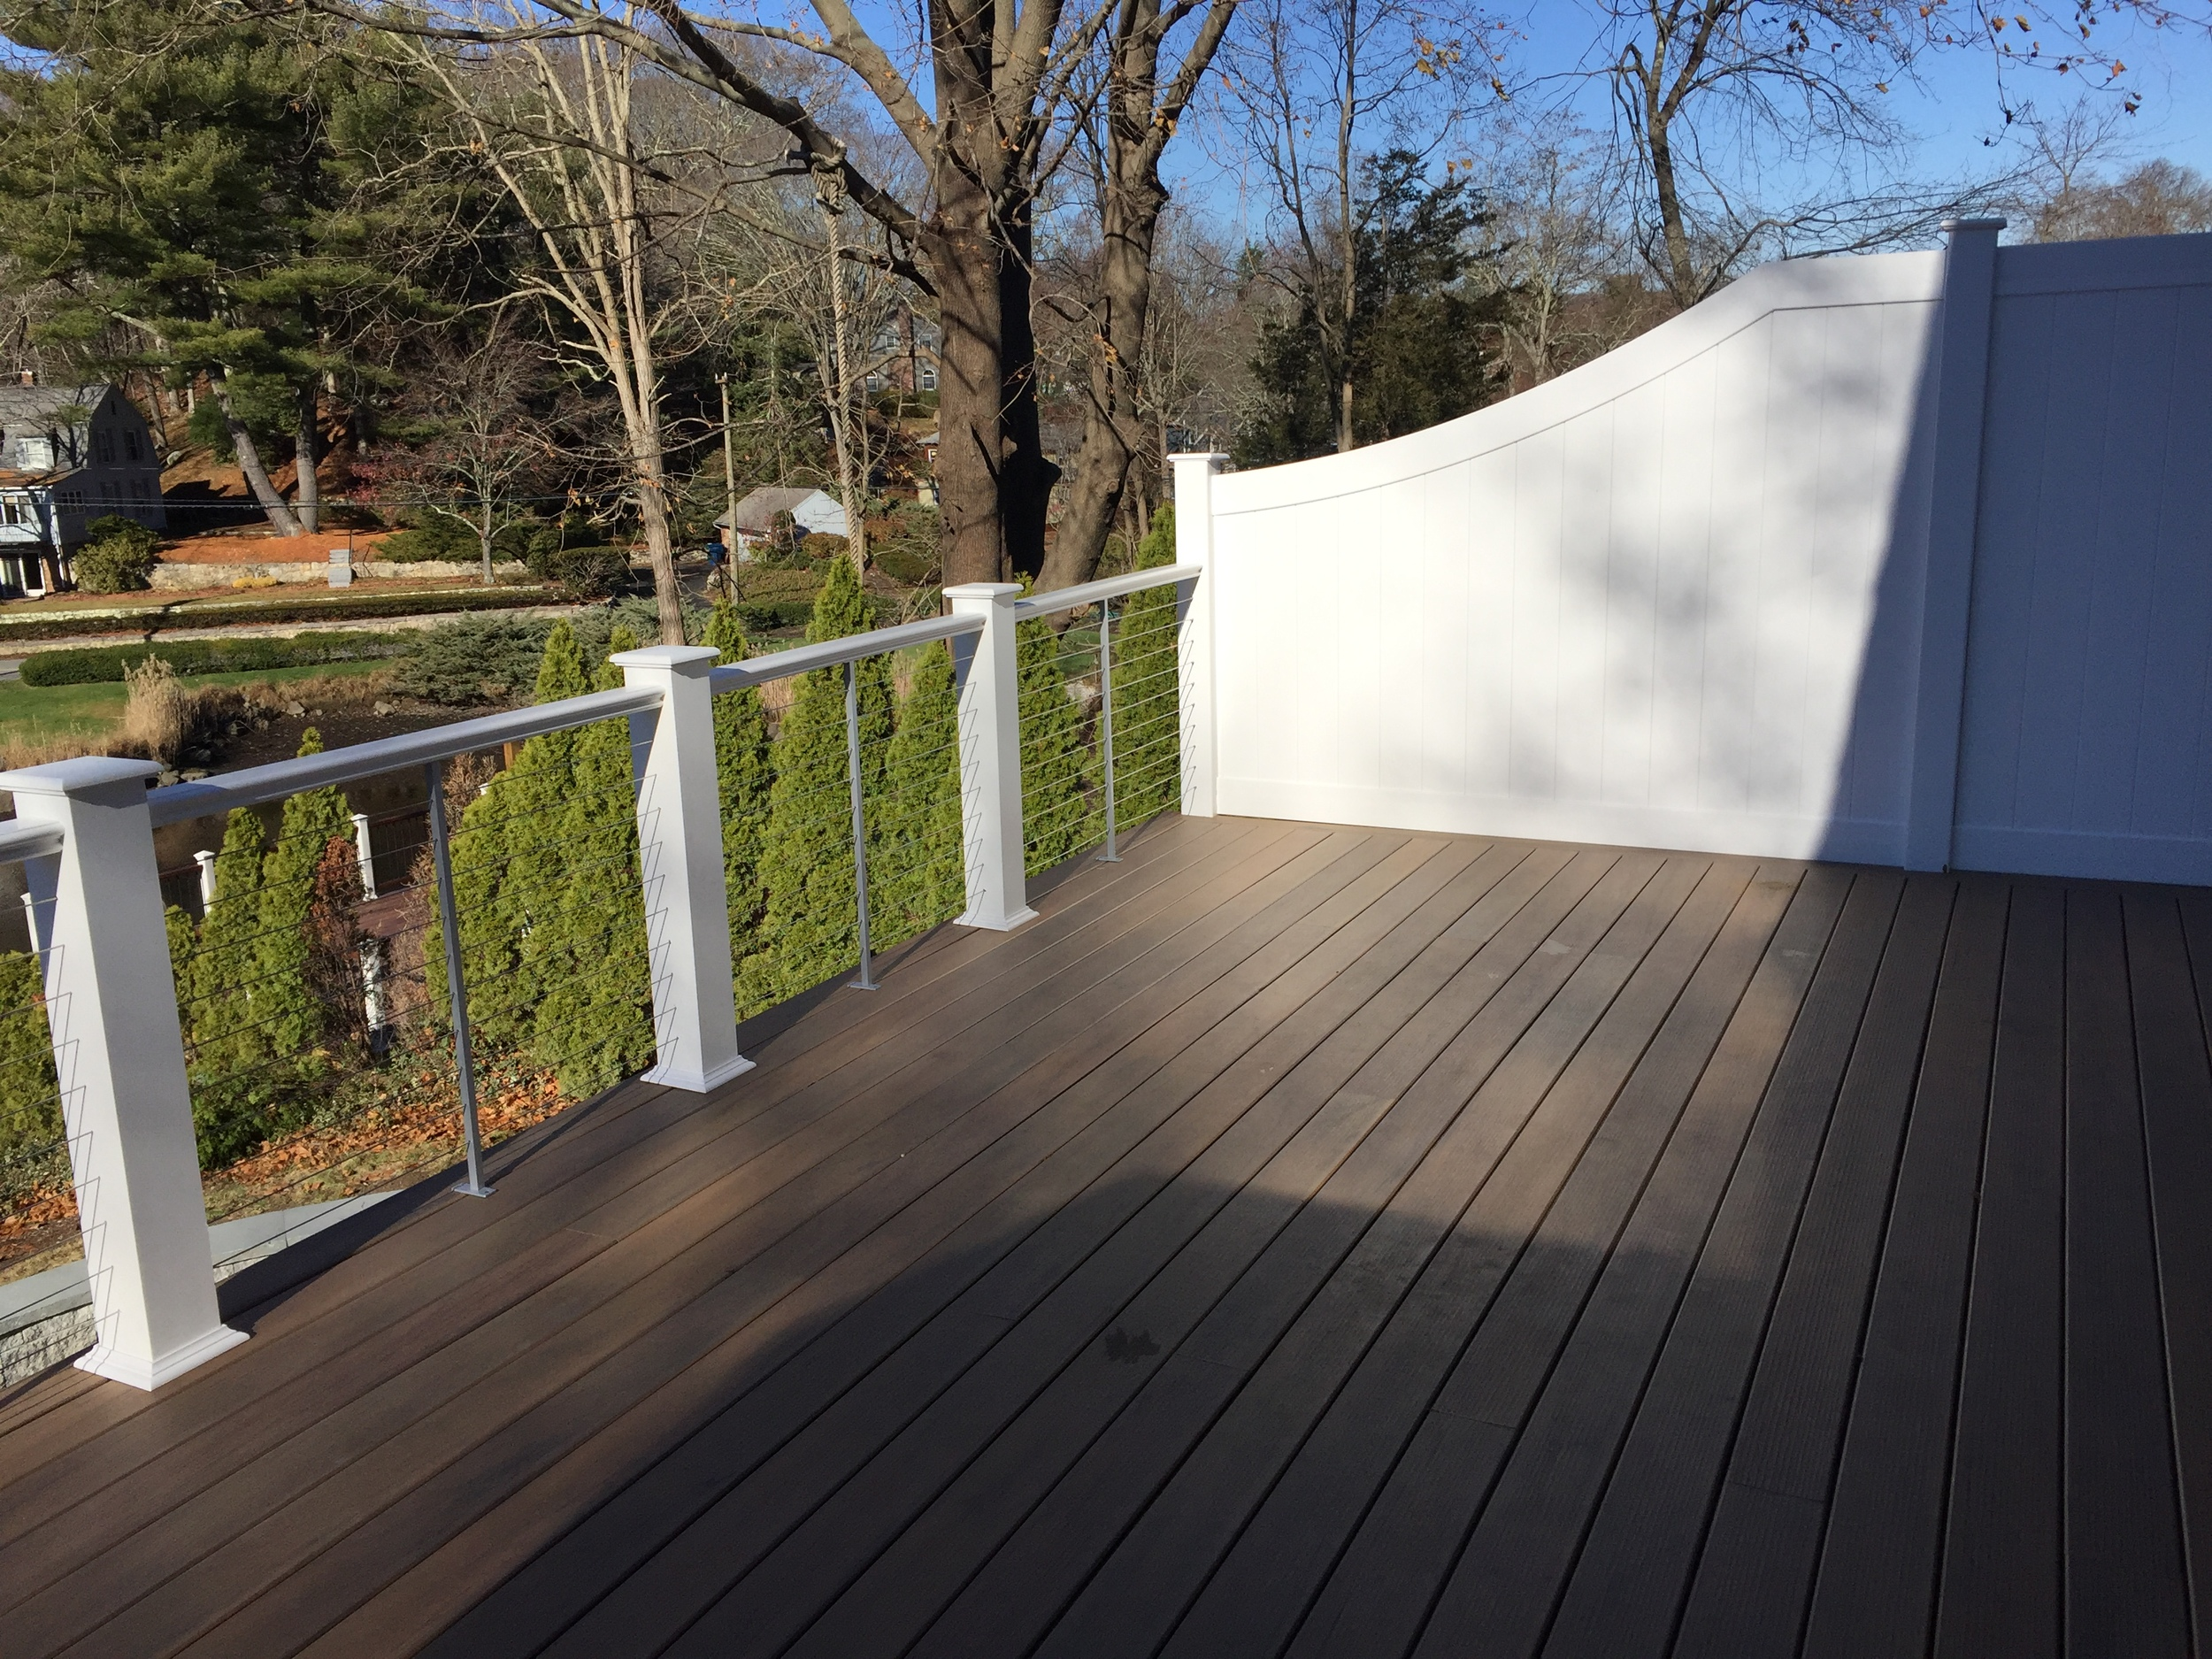 Stone Patio and New Deck in Waterford CT | Shaw Remodeling